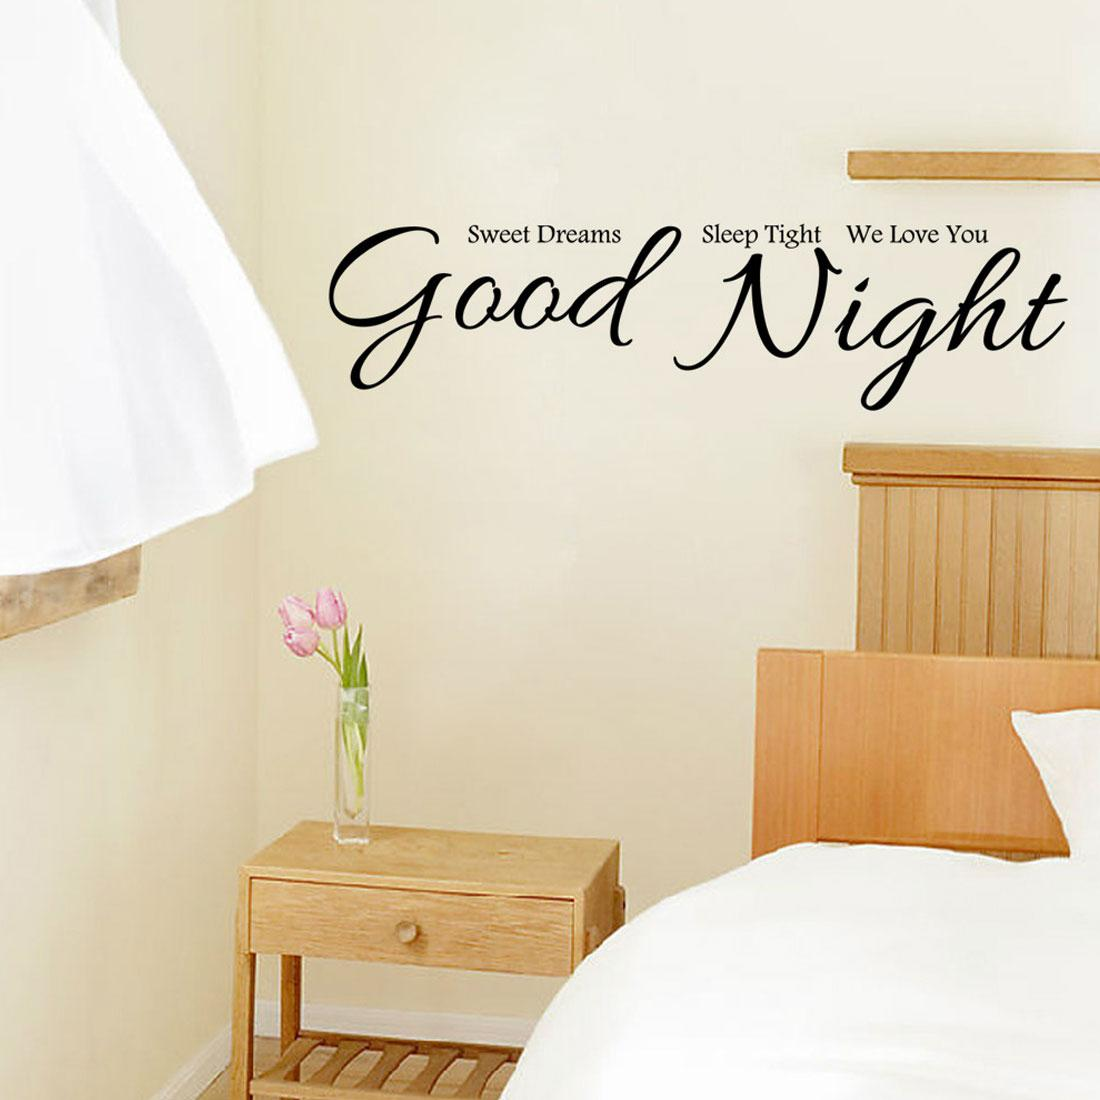 Good Night Wall Stickers Home Decor House Decorative Stickers Wall Decals For Bedroom Hde 012